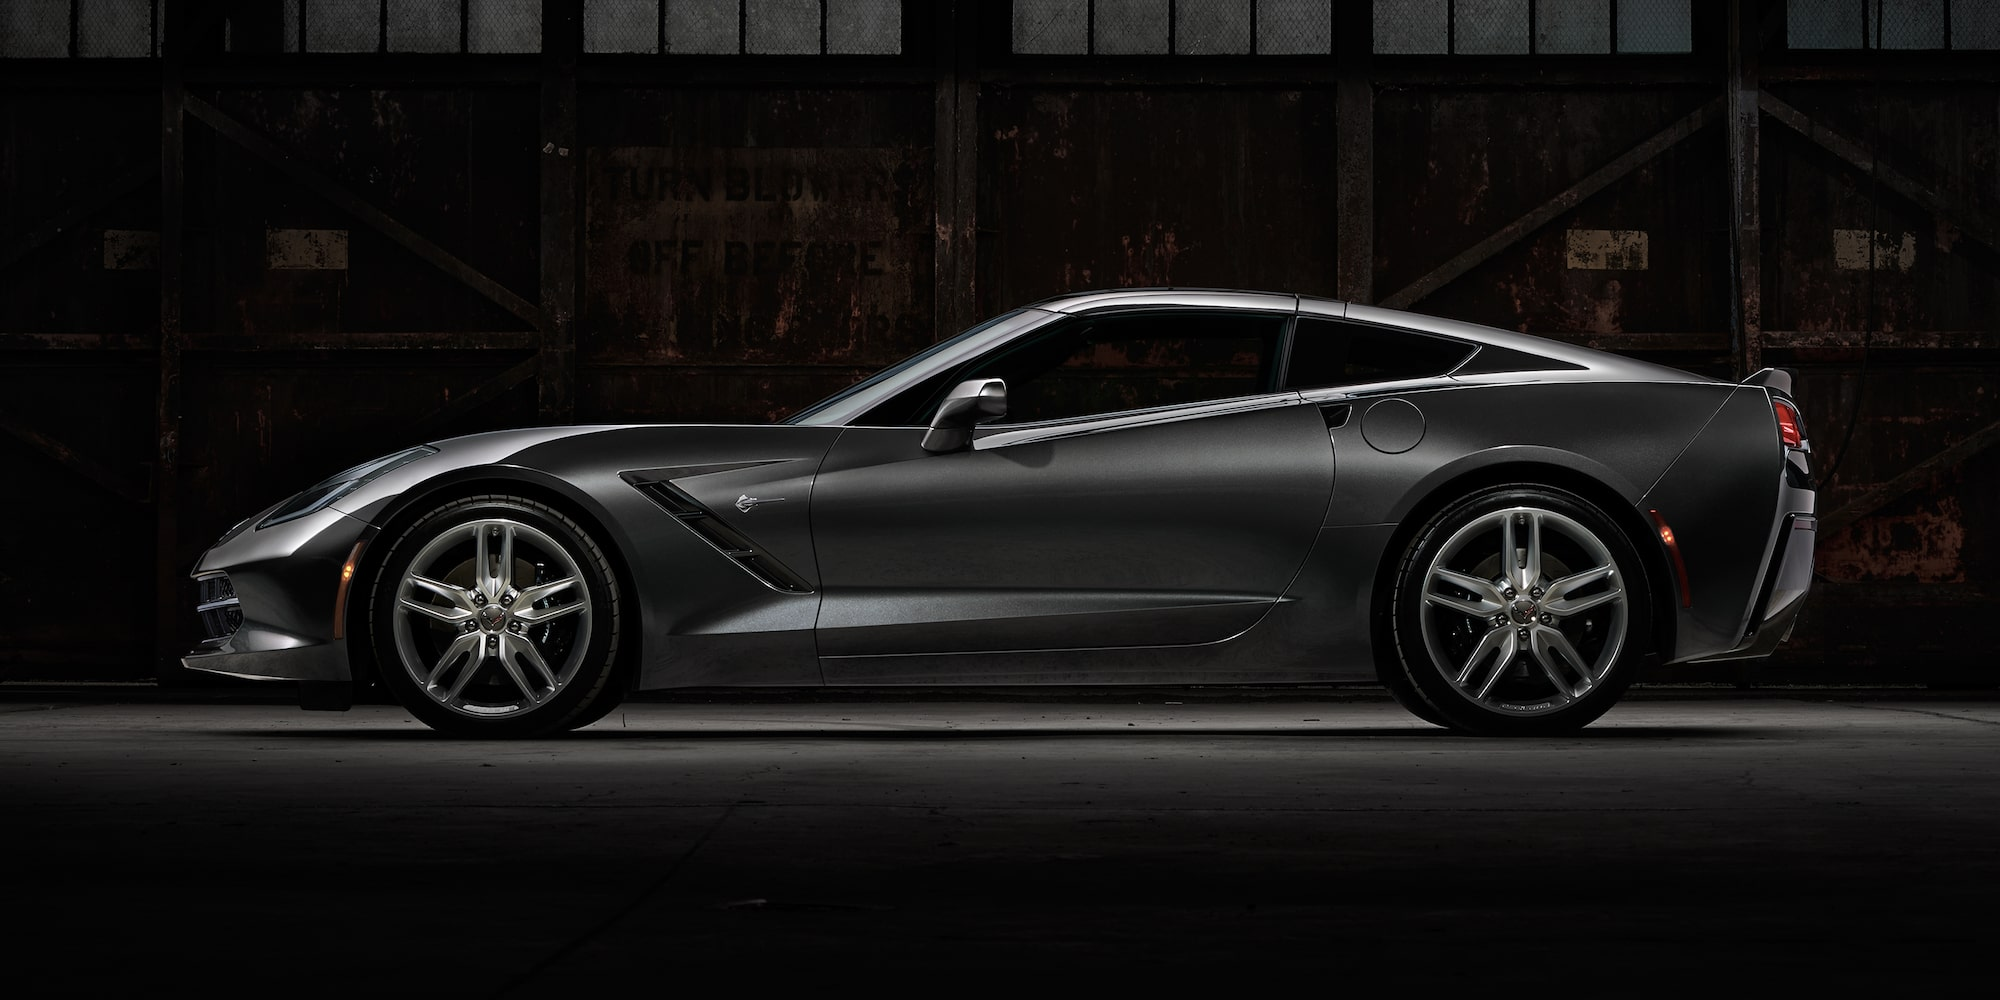 2018 Corvette Stingray Exterior Photo: Side Profile